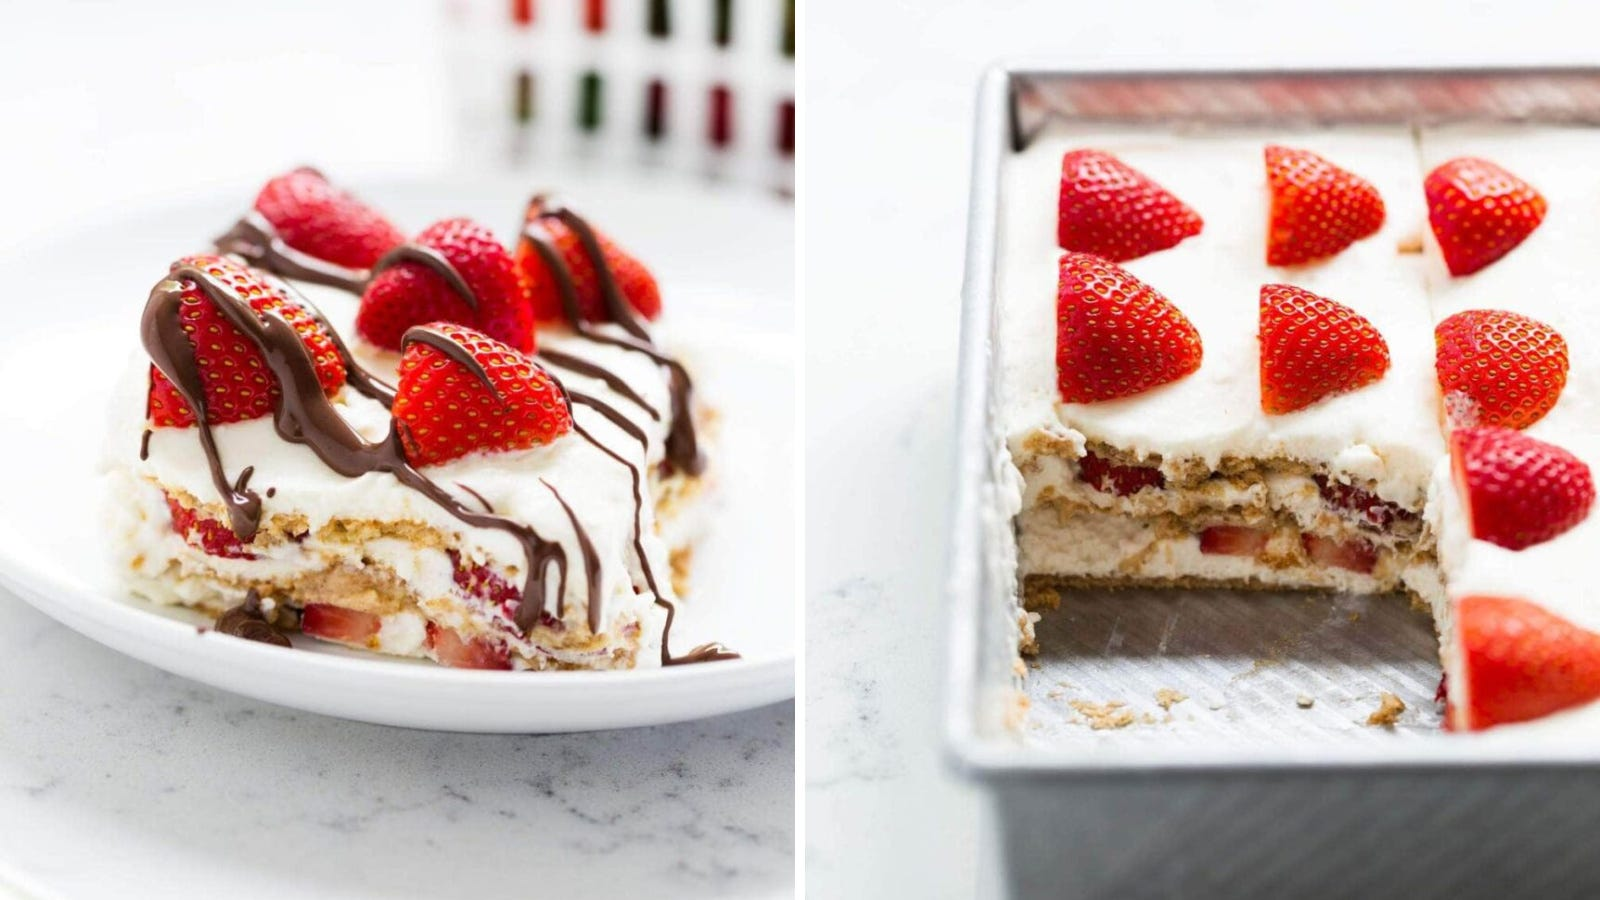 Two images: The left image features a peice of strawberry icebox cake and the right image features an entire cake with one missing peice.